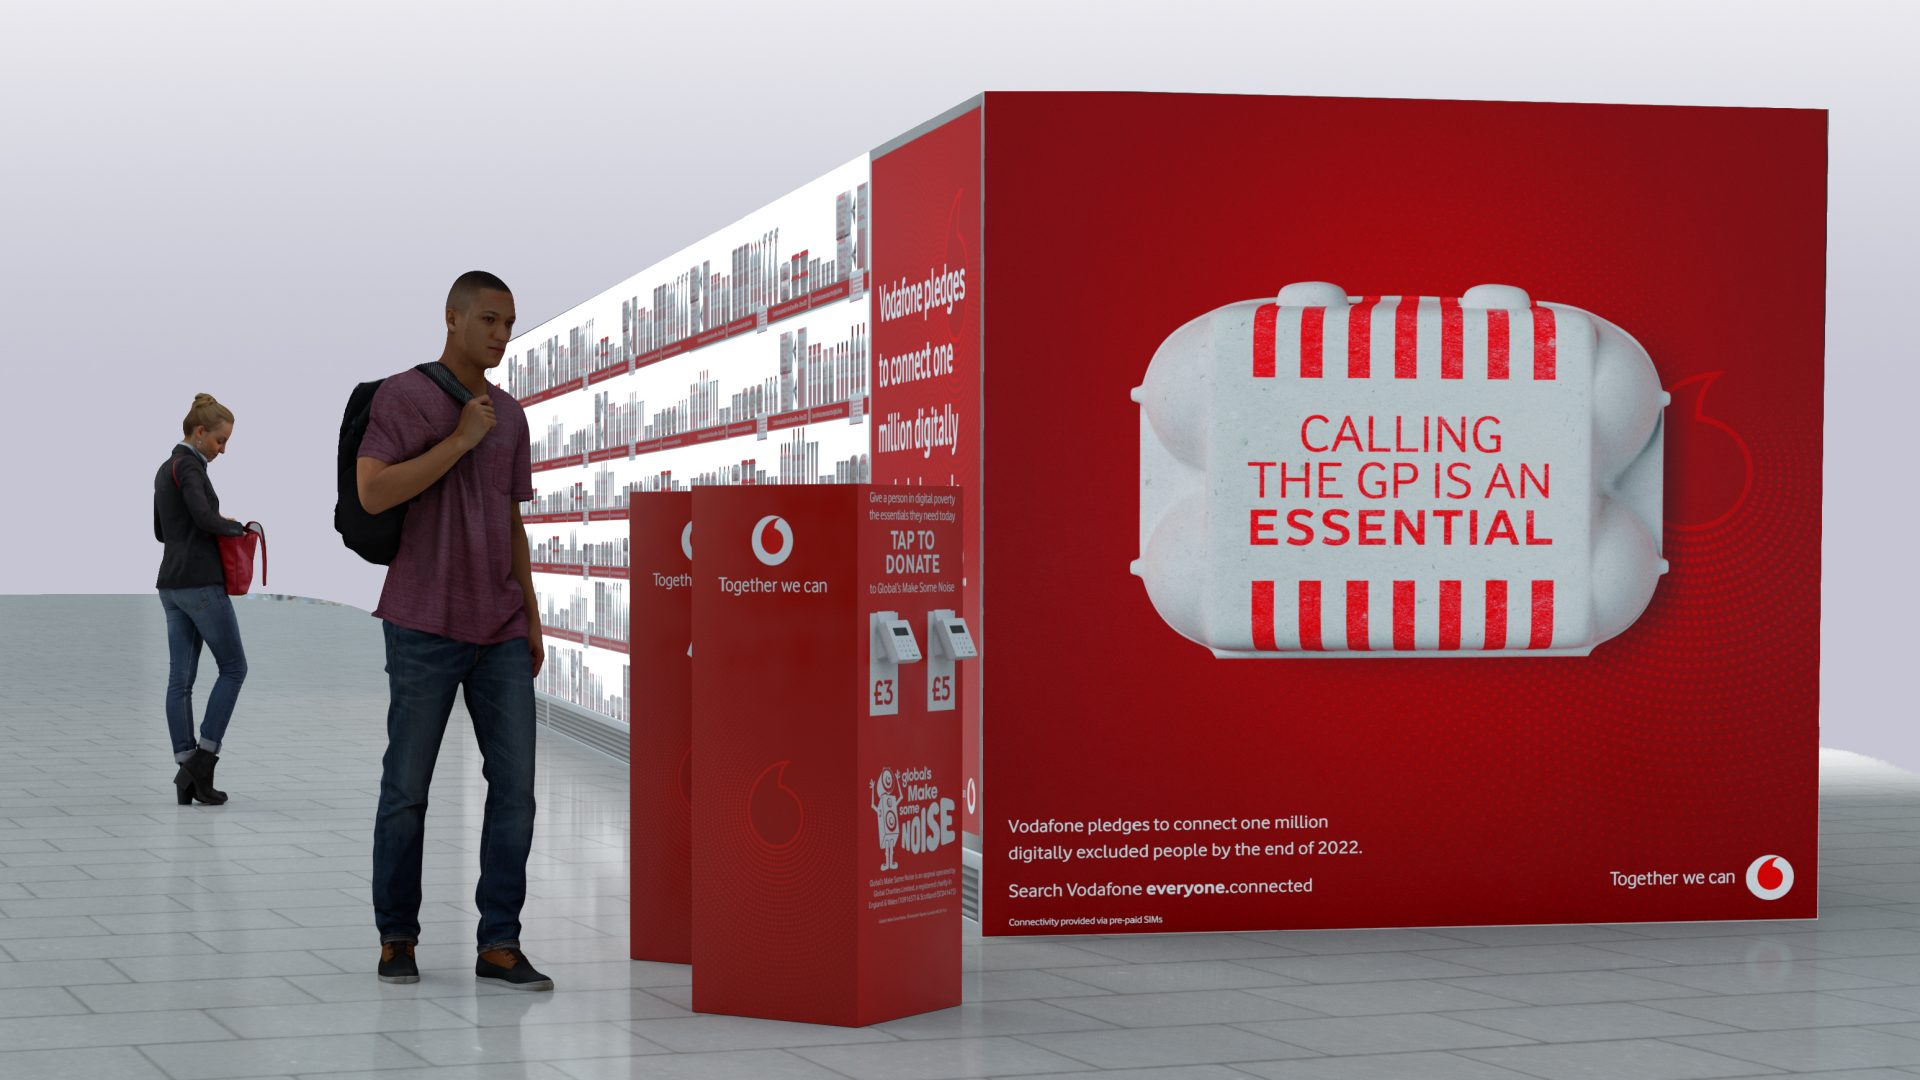 mock-up image of Vodafone and Global's digital poverty art installation